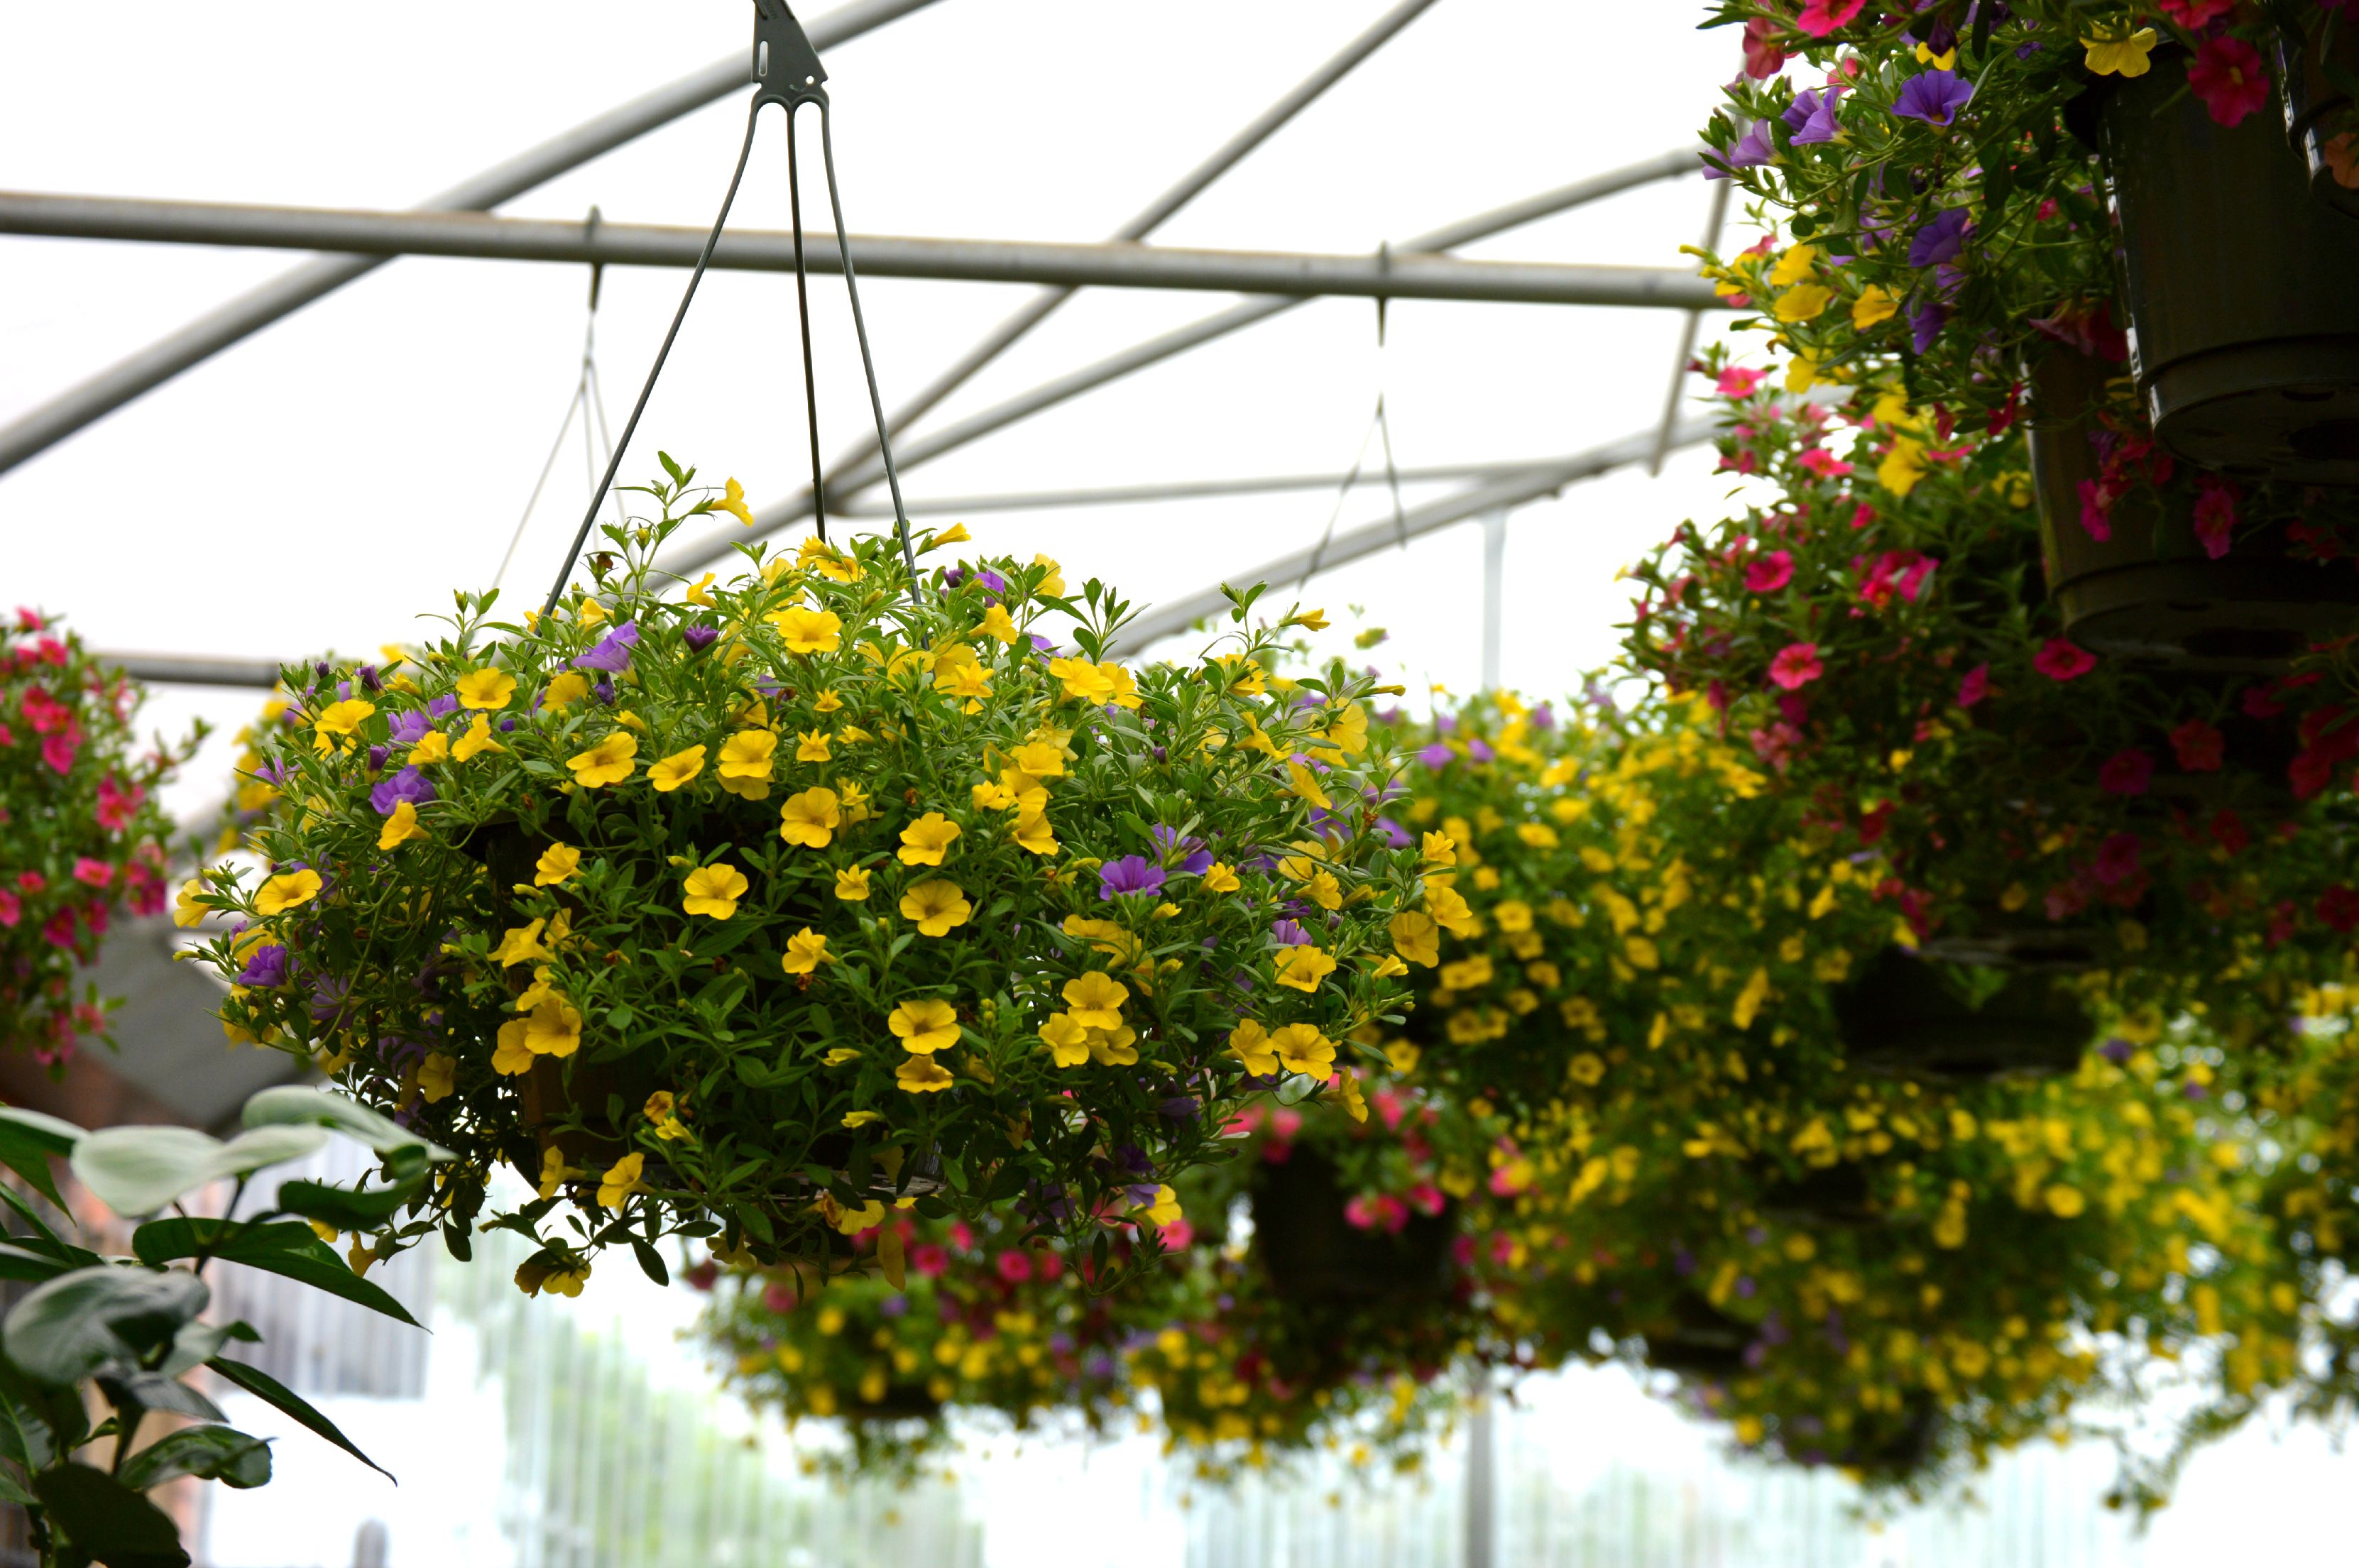 Hundreds Of Hanging Baskets Are Now Available At Ellis Home And Garden!